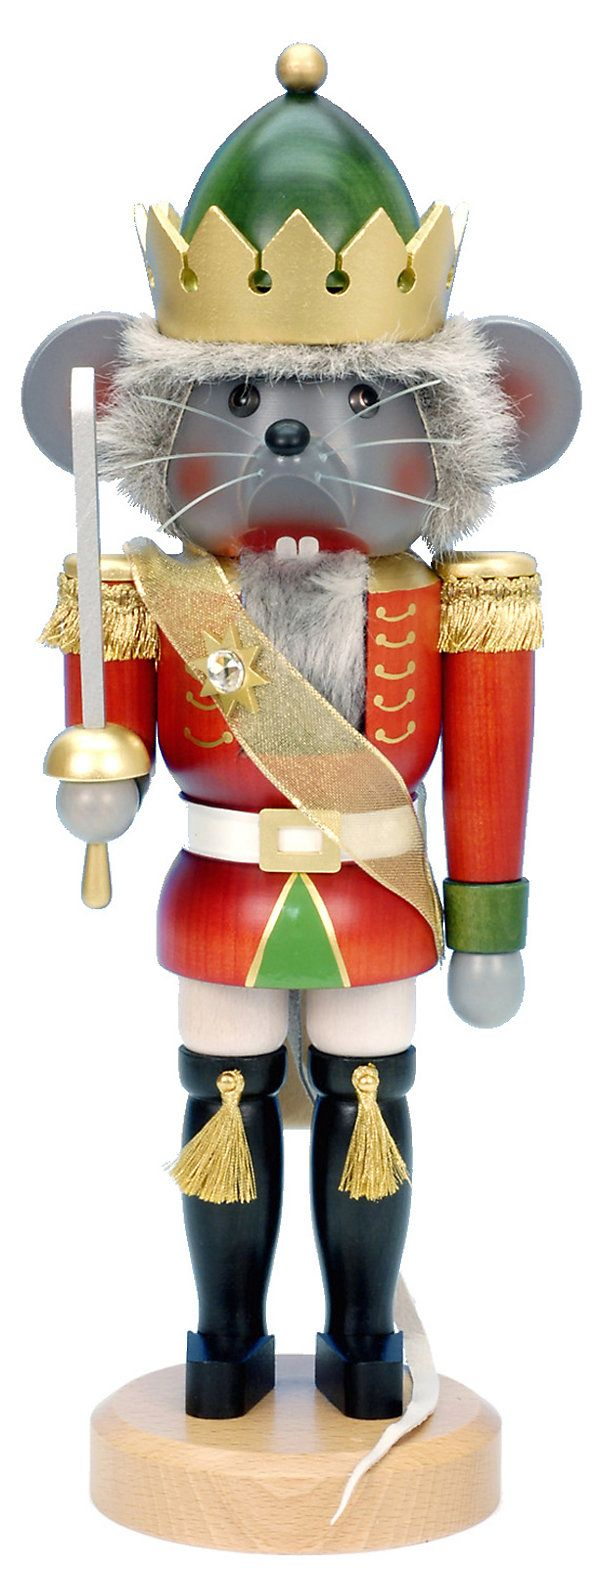 "One Kings Lane - The Nutcracker Suite - 16"" Mouse King Nutcracker"